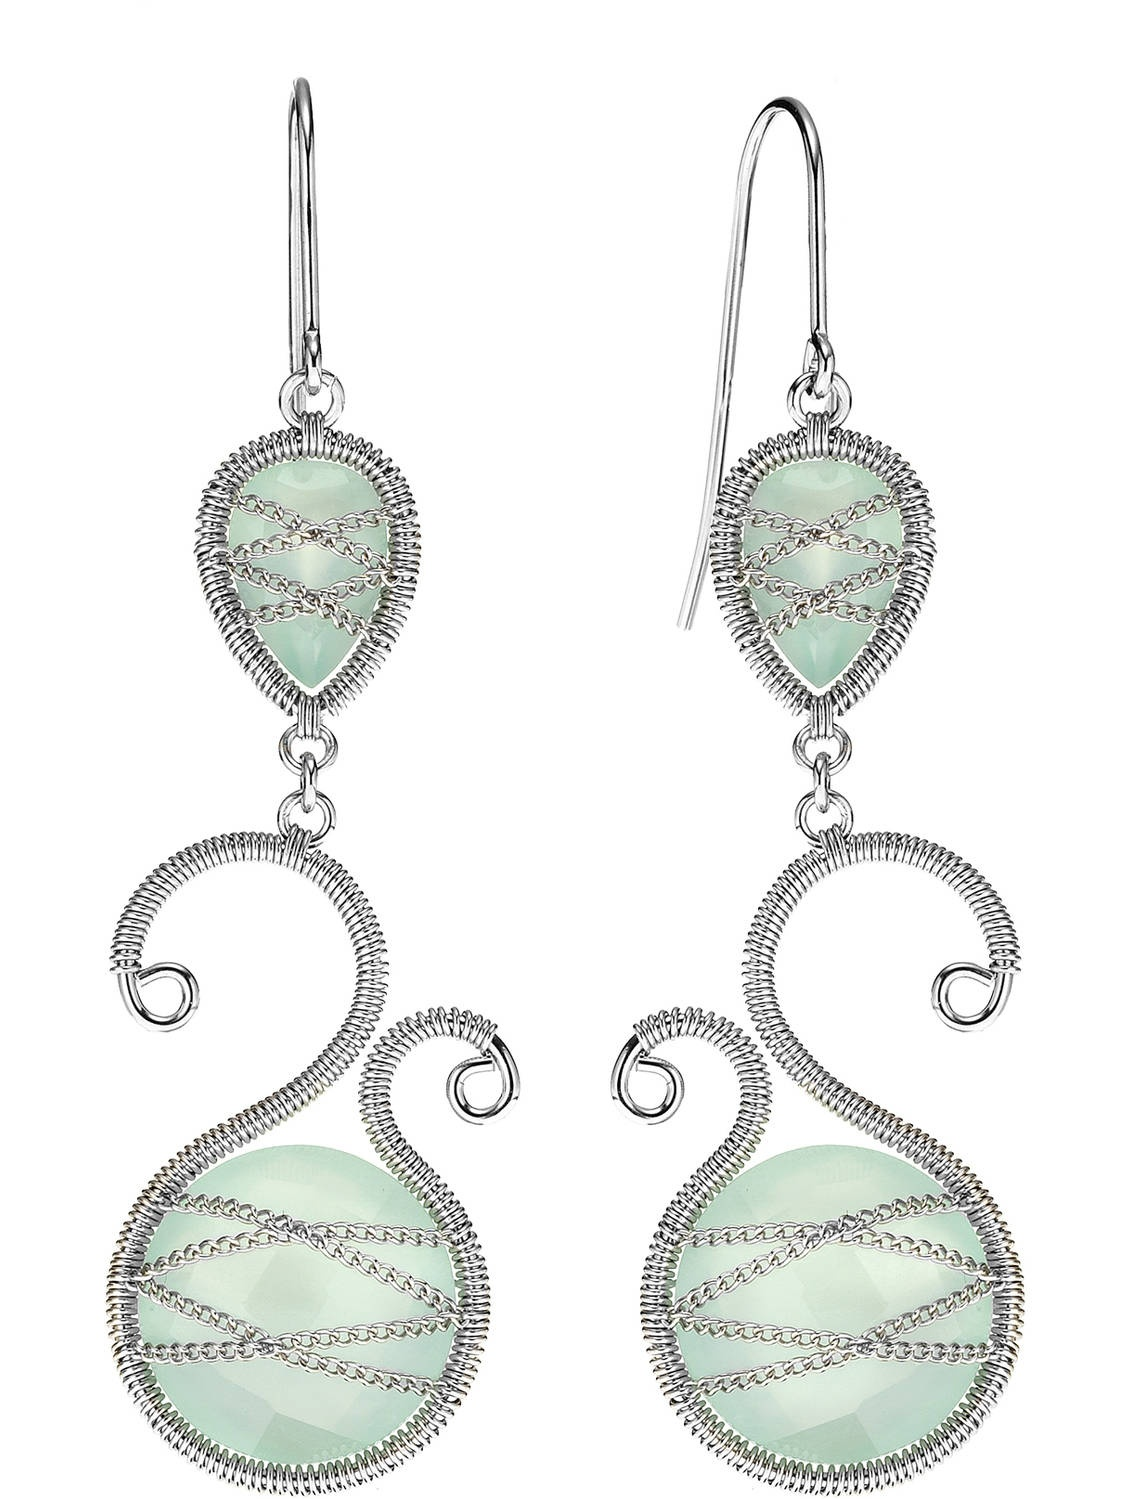 5th & Main Sterling Silver Hand-Wrapped Asymmetric and Teardrop Chalcedony Stone Earrings by Generic